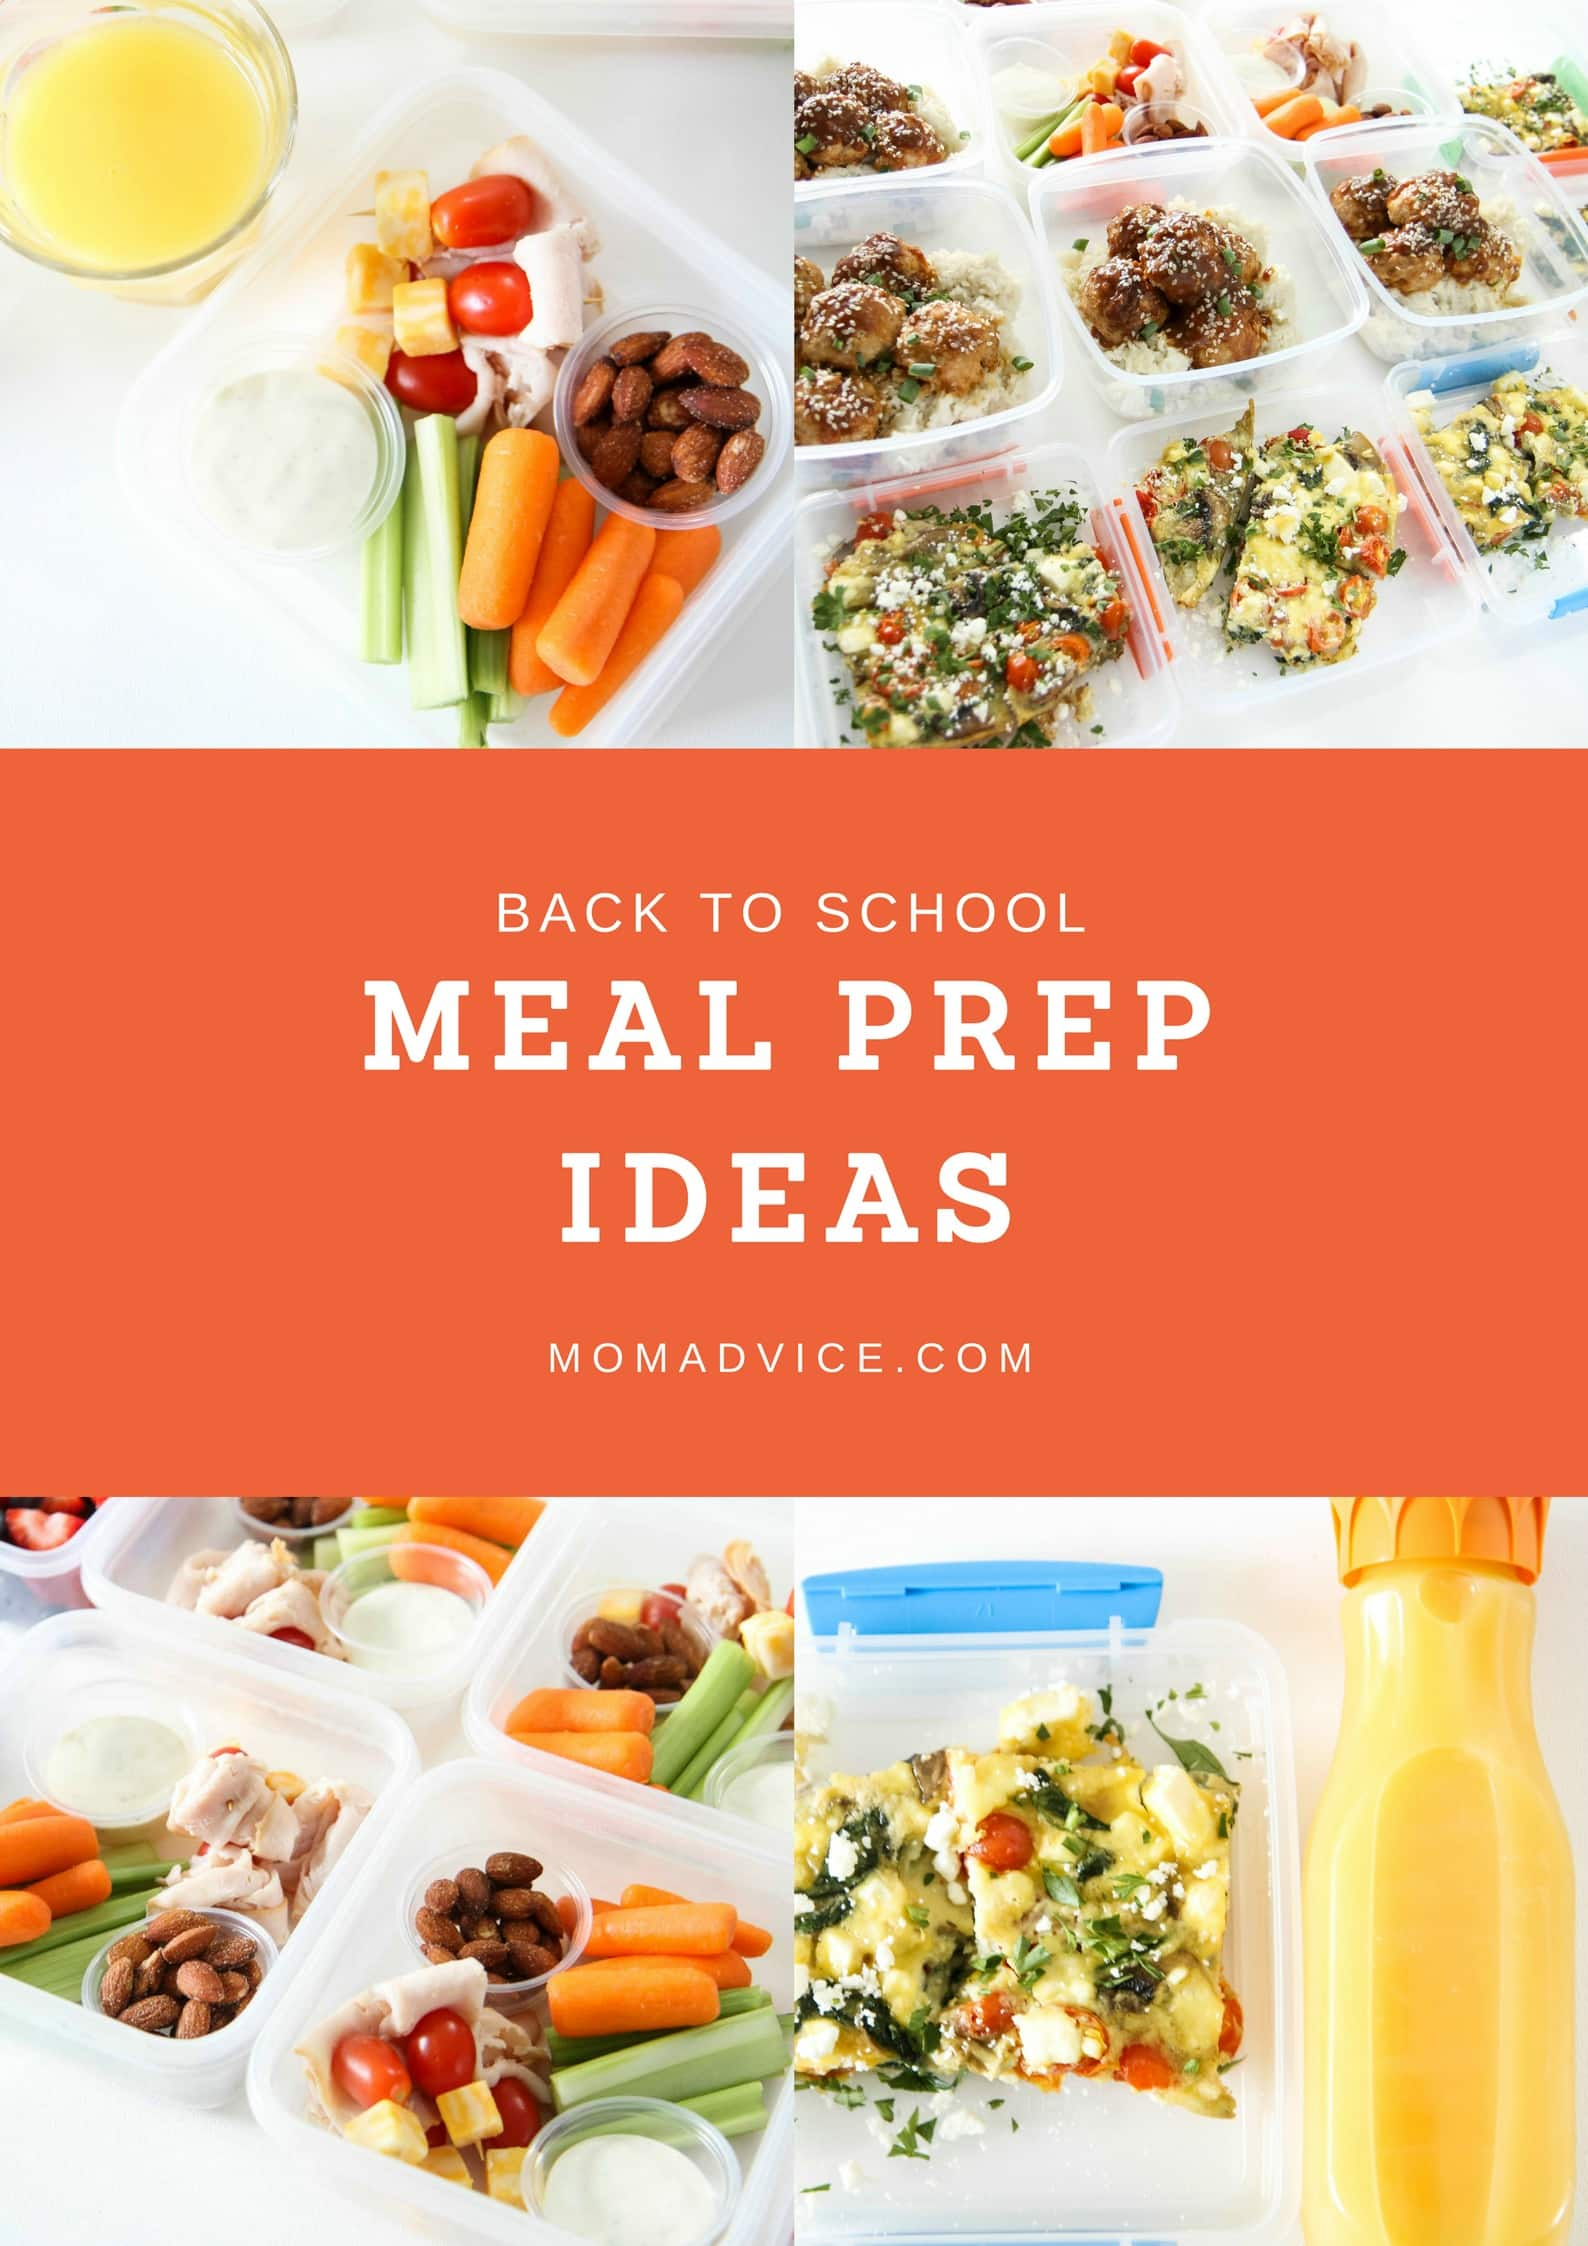 Back-to-School Meal Prep Ideas